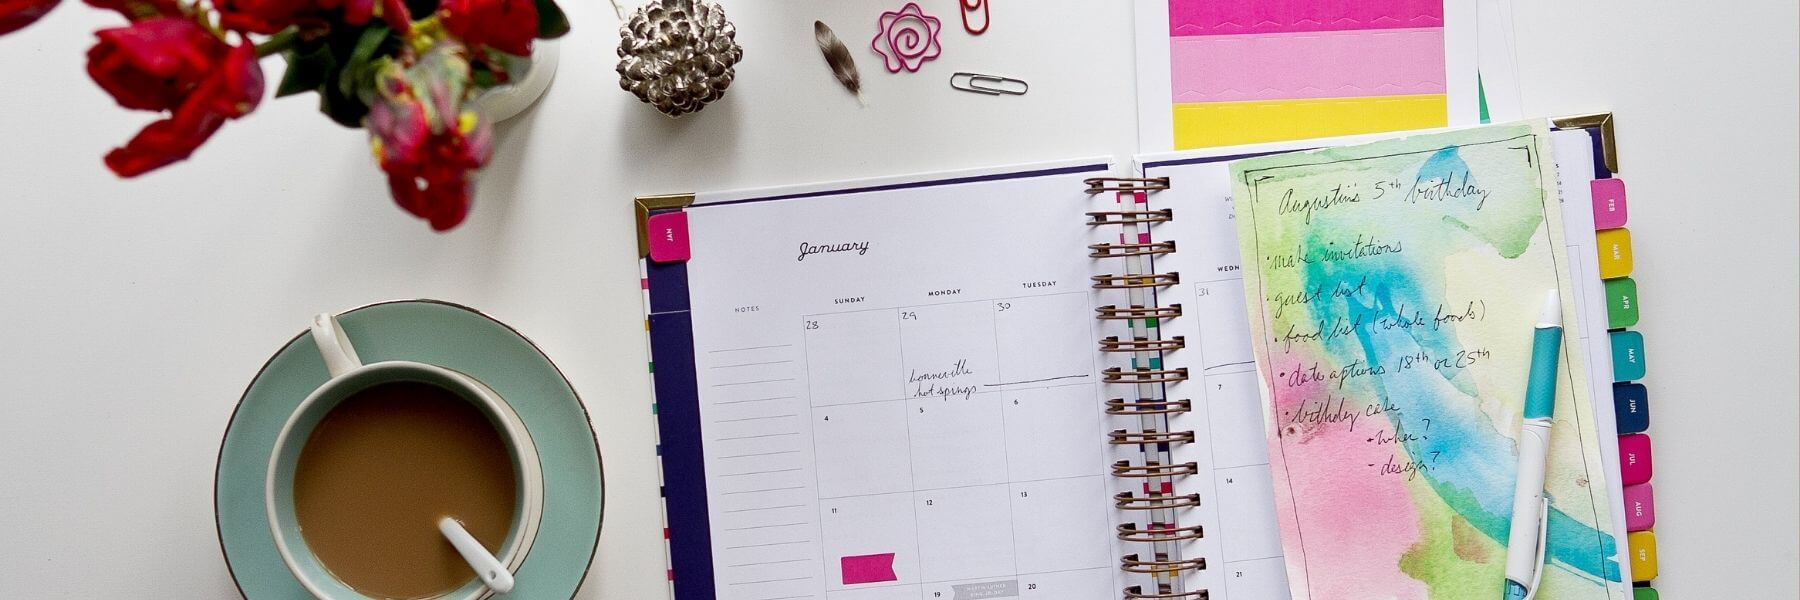 Desktop with flowers, planner, and organization.